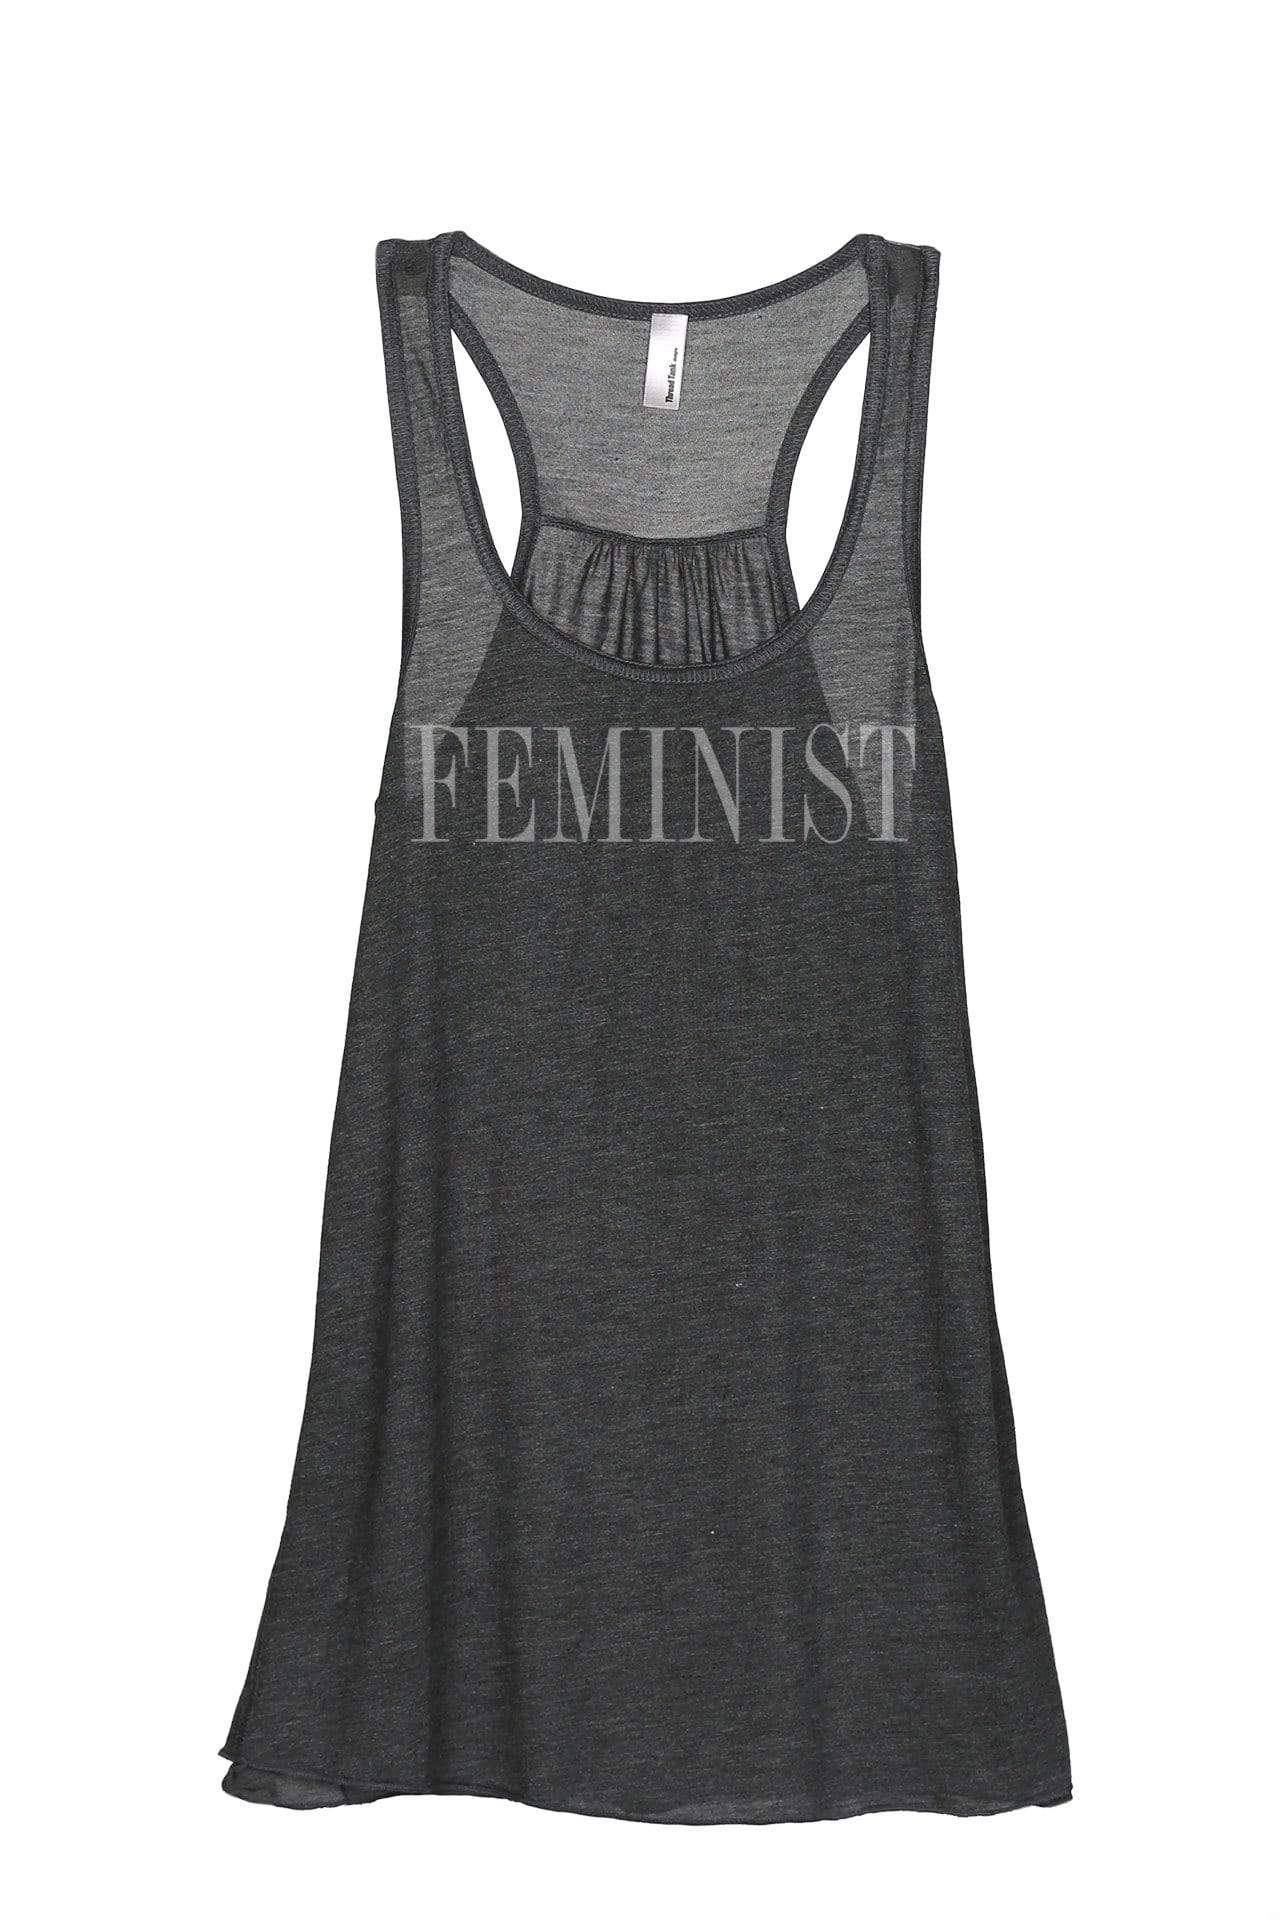 Feminist - Thread Tank | Stories You Can Wear | T-Shirts, Tank Tops and Sweatshirts